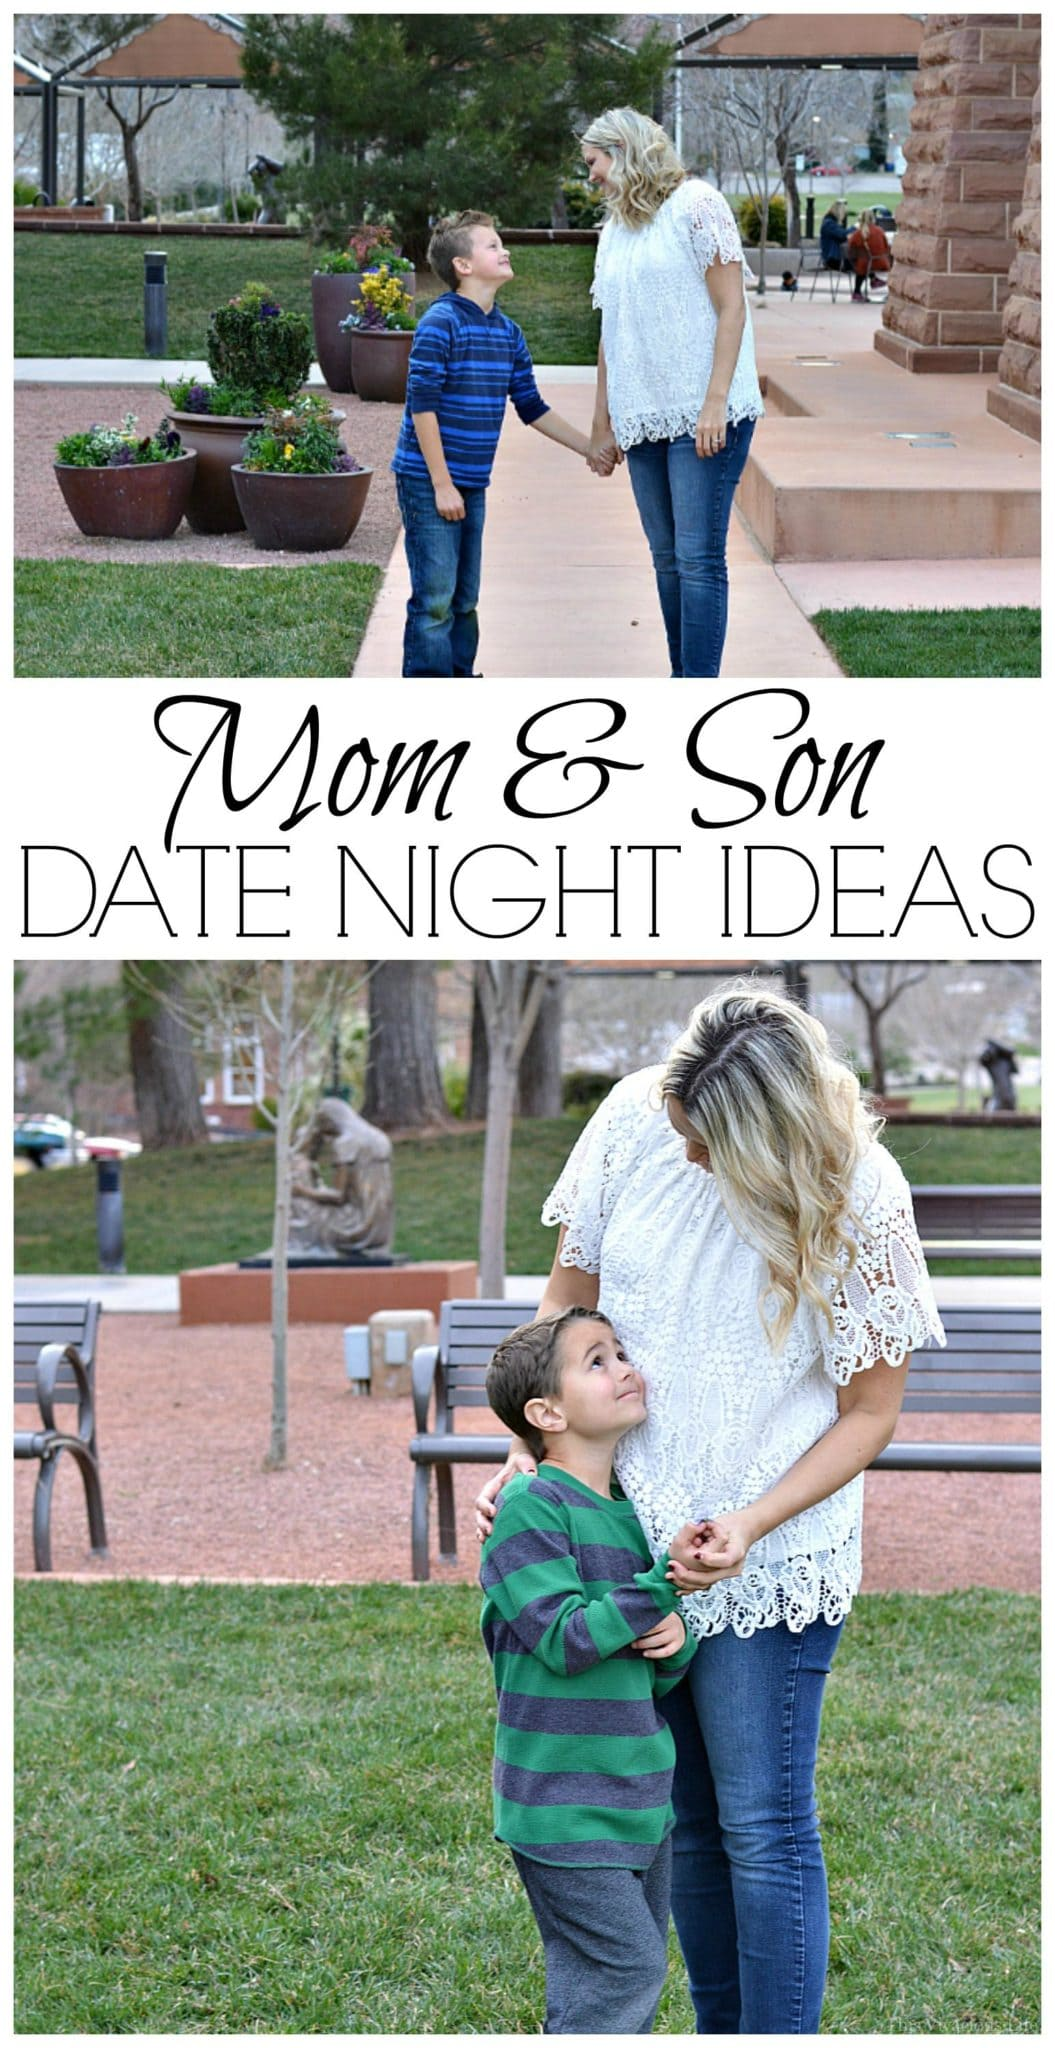 Mom And Son Date Night Ideas For Many Memories